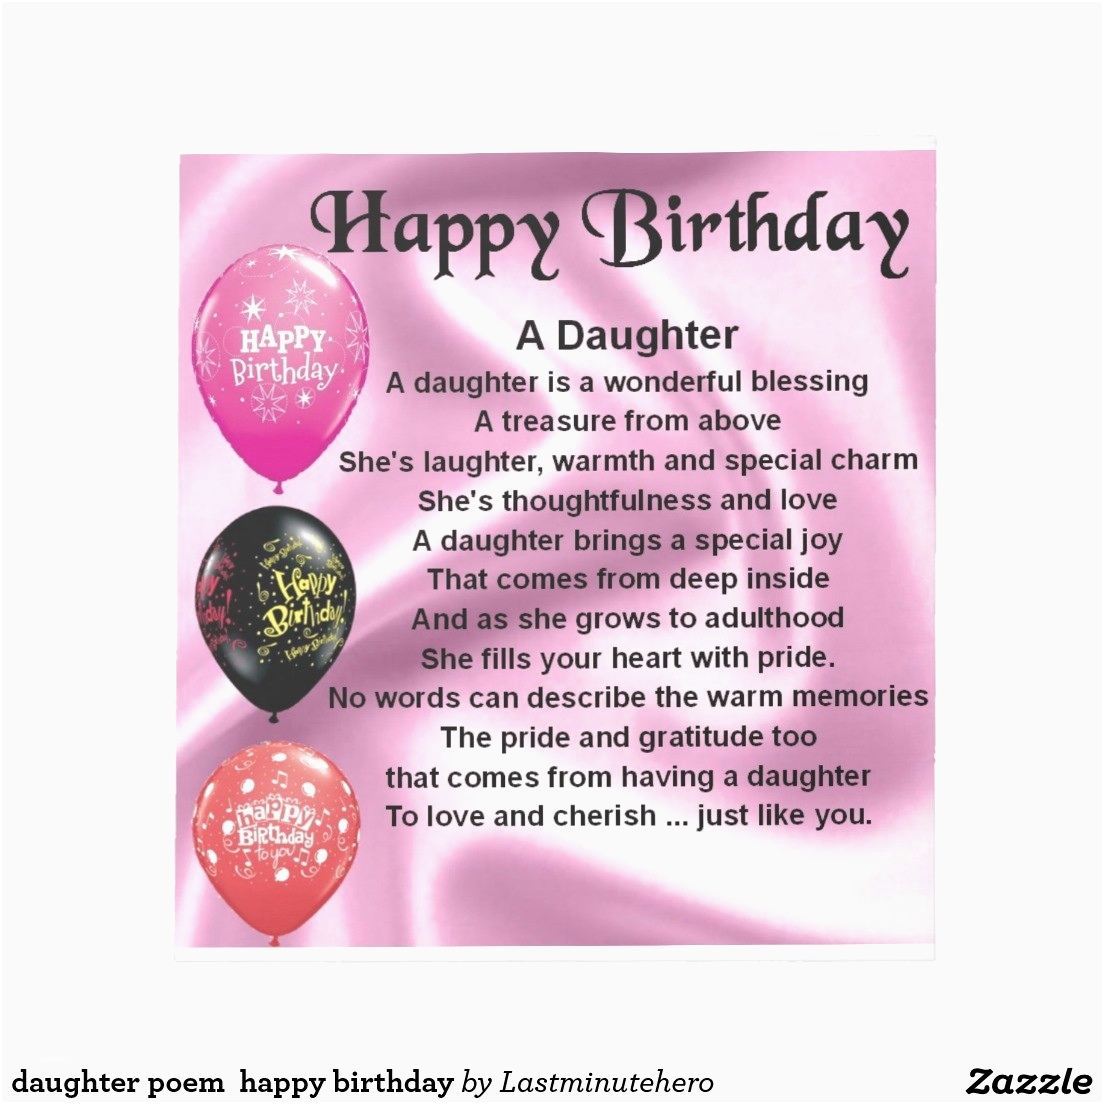 happy birthday goddaughter quotes ; happy-birthday-goddaughter-images-awesome-49-unique-happy-birthday-goddaughter-quotes-of-happy-birthday-goddaughter-images